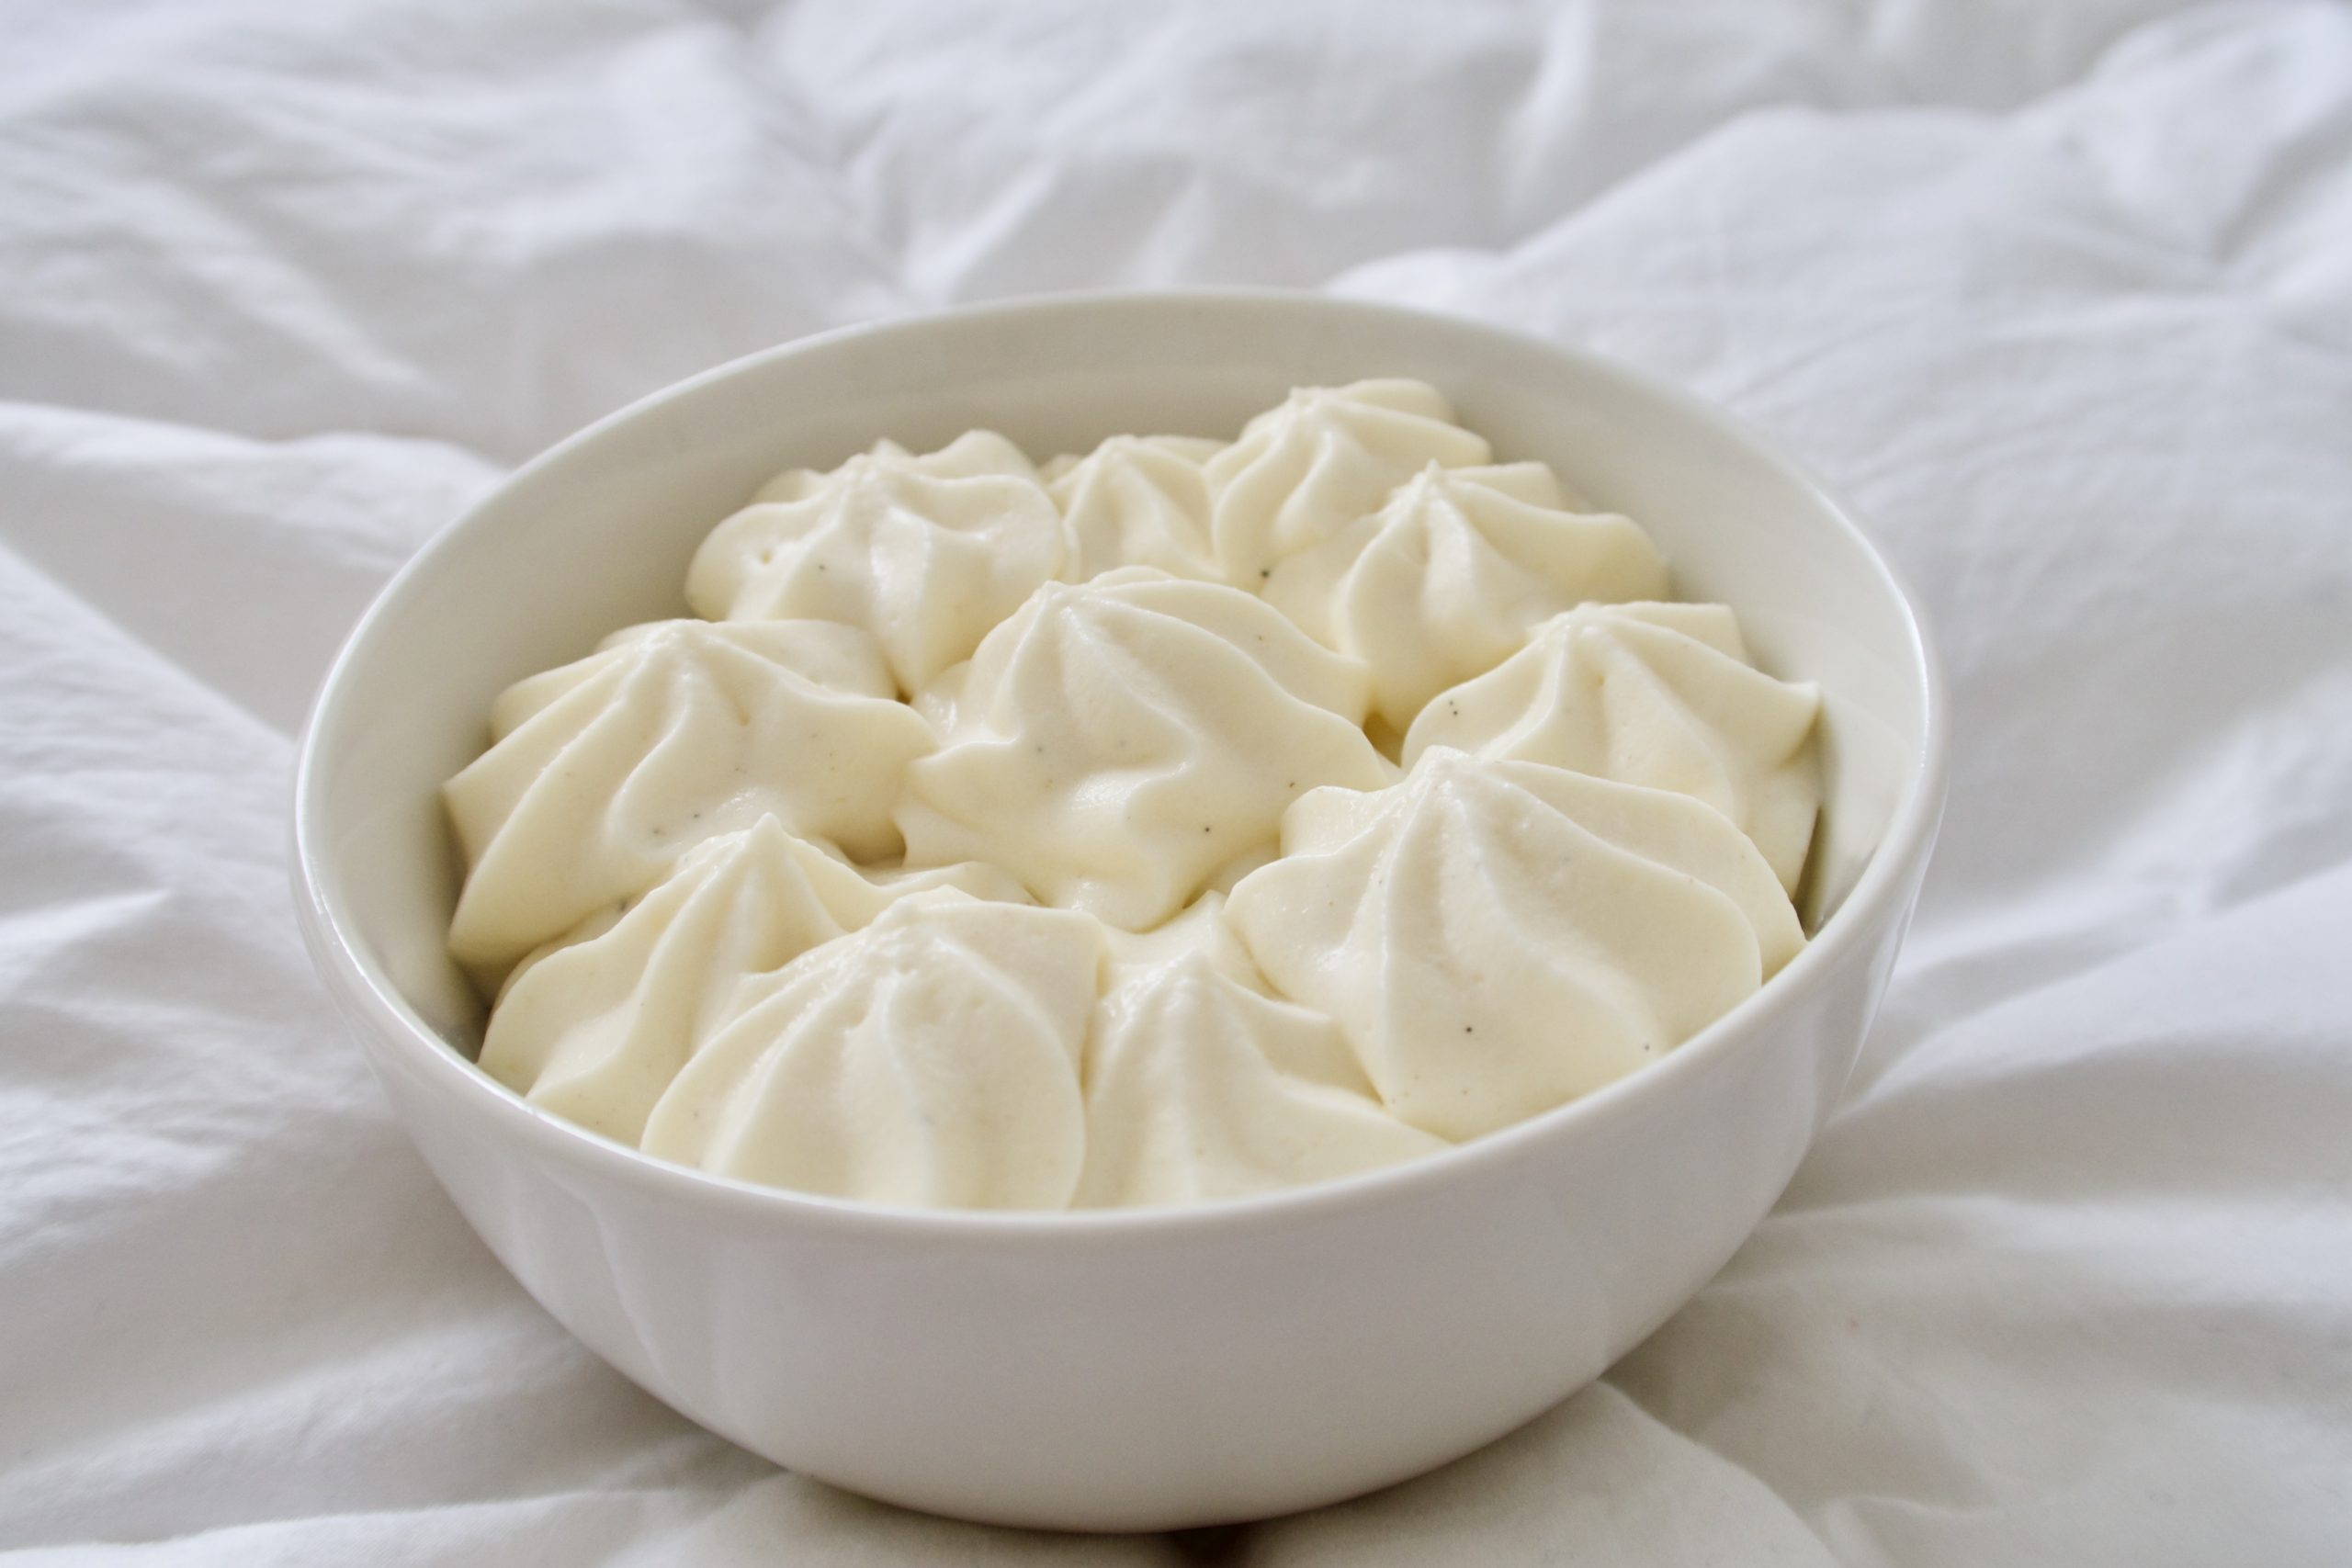 diplomat cream in a white bowl on a white background